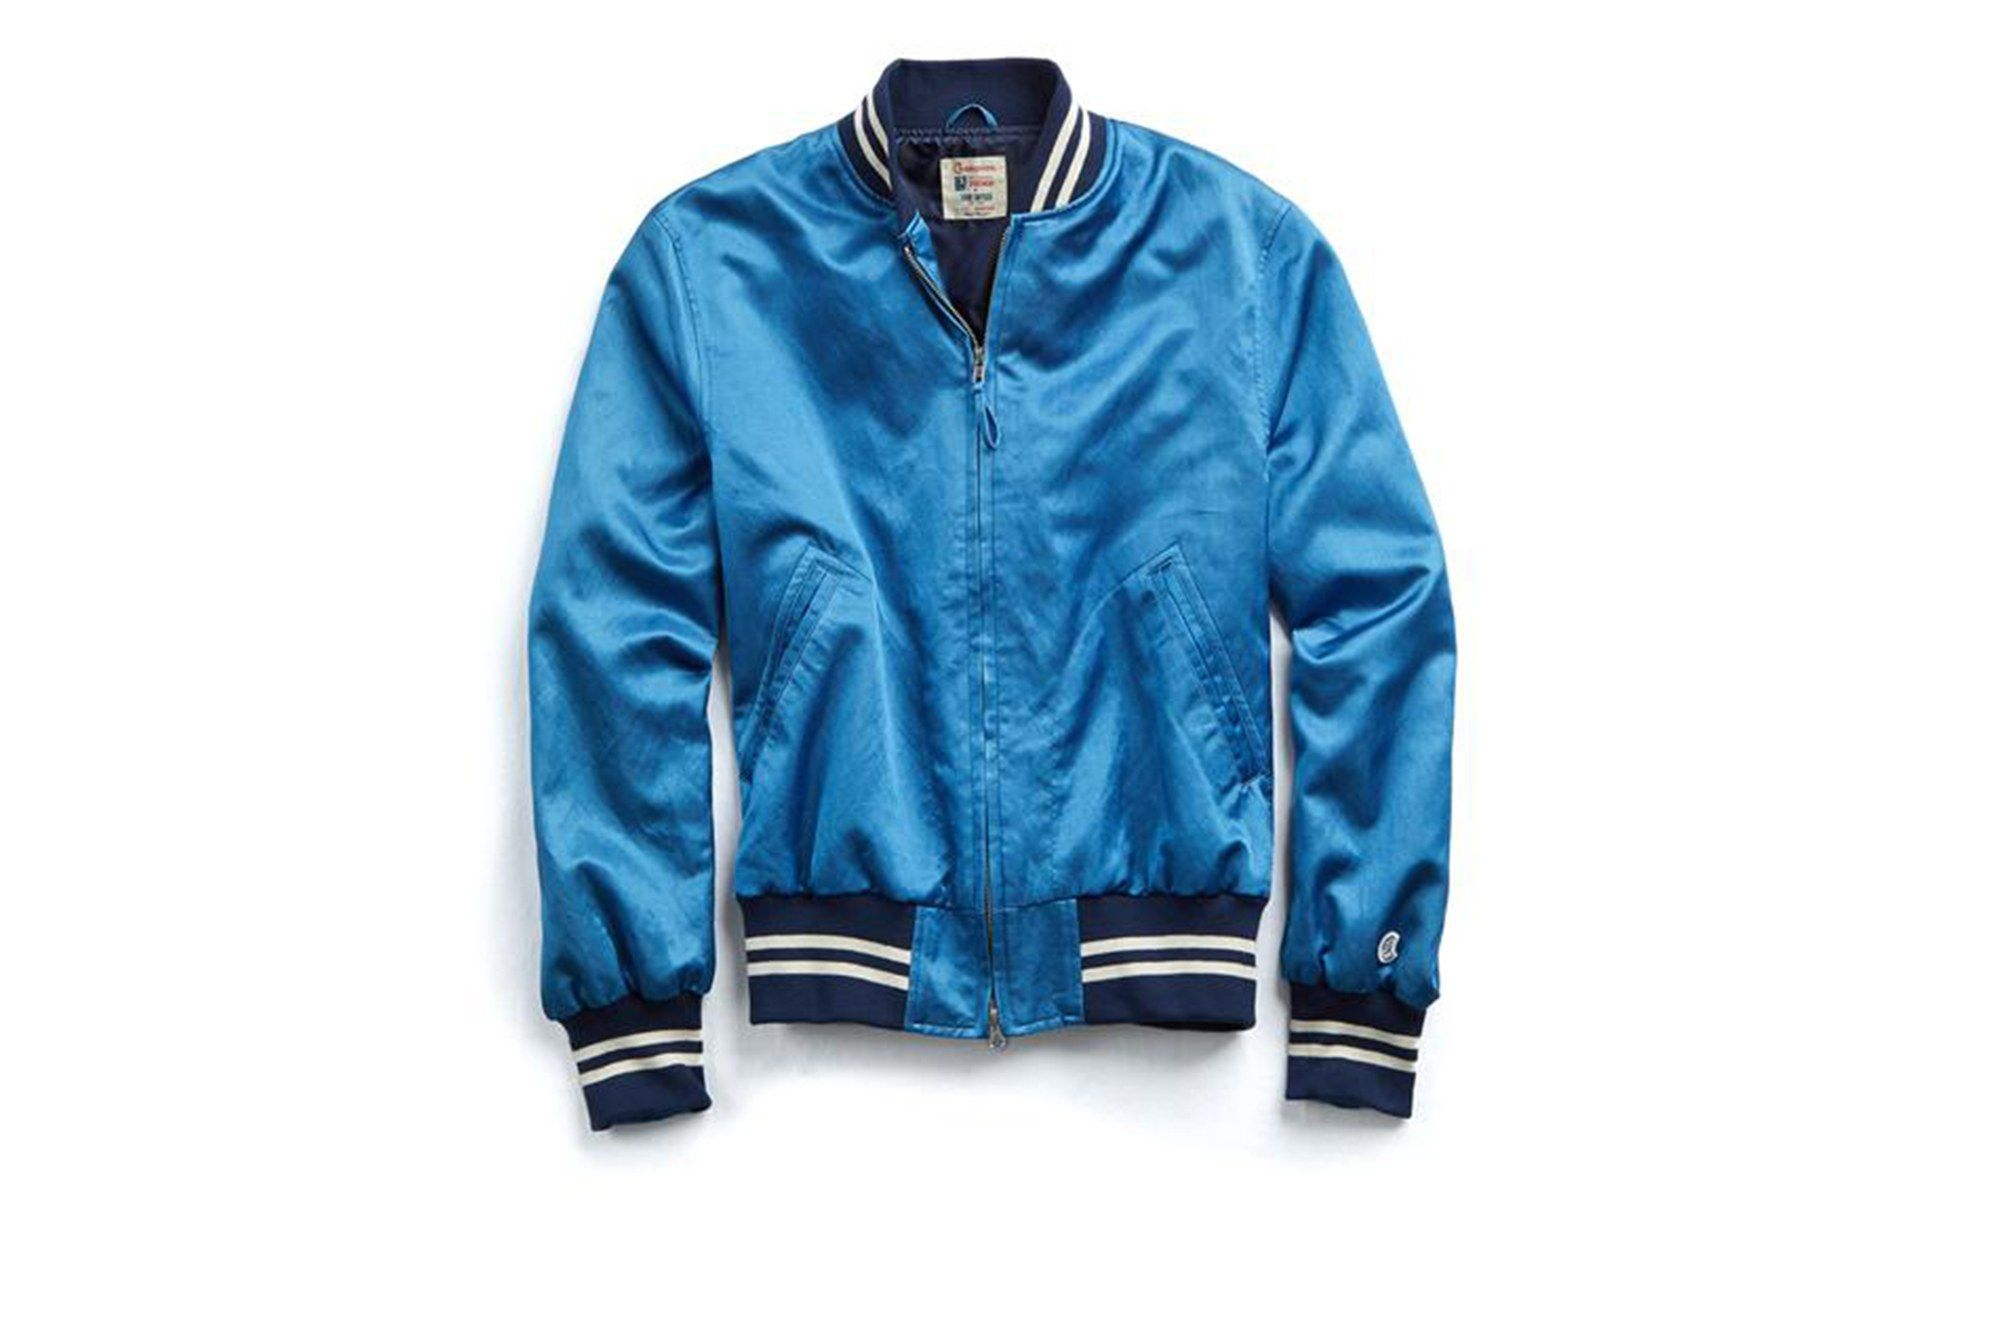 The New Bomber Jacket Is Bigger Bolder Brighter And Better Than Ever Bomber Jacket Jackets Satin Bomber Jacket [ 1333 x 2000 Pixel ]